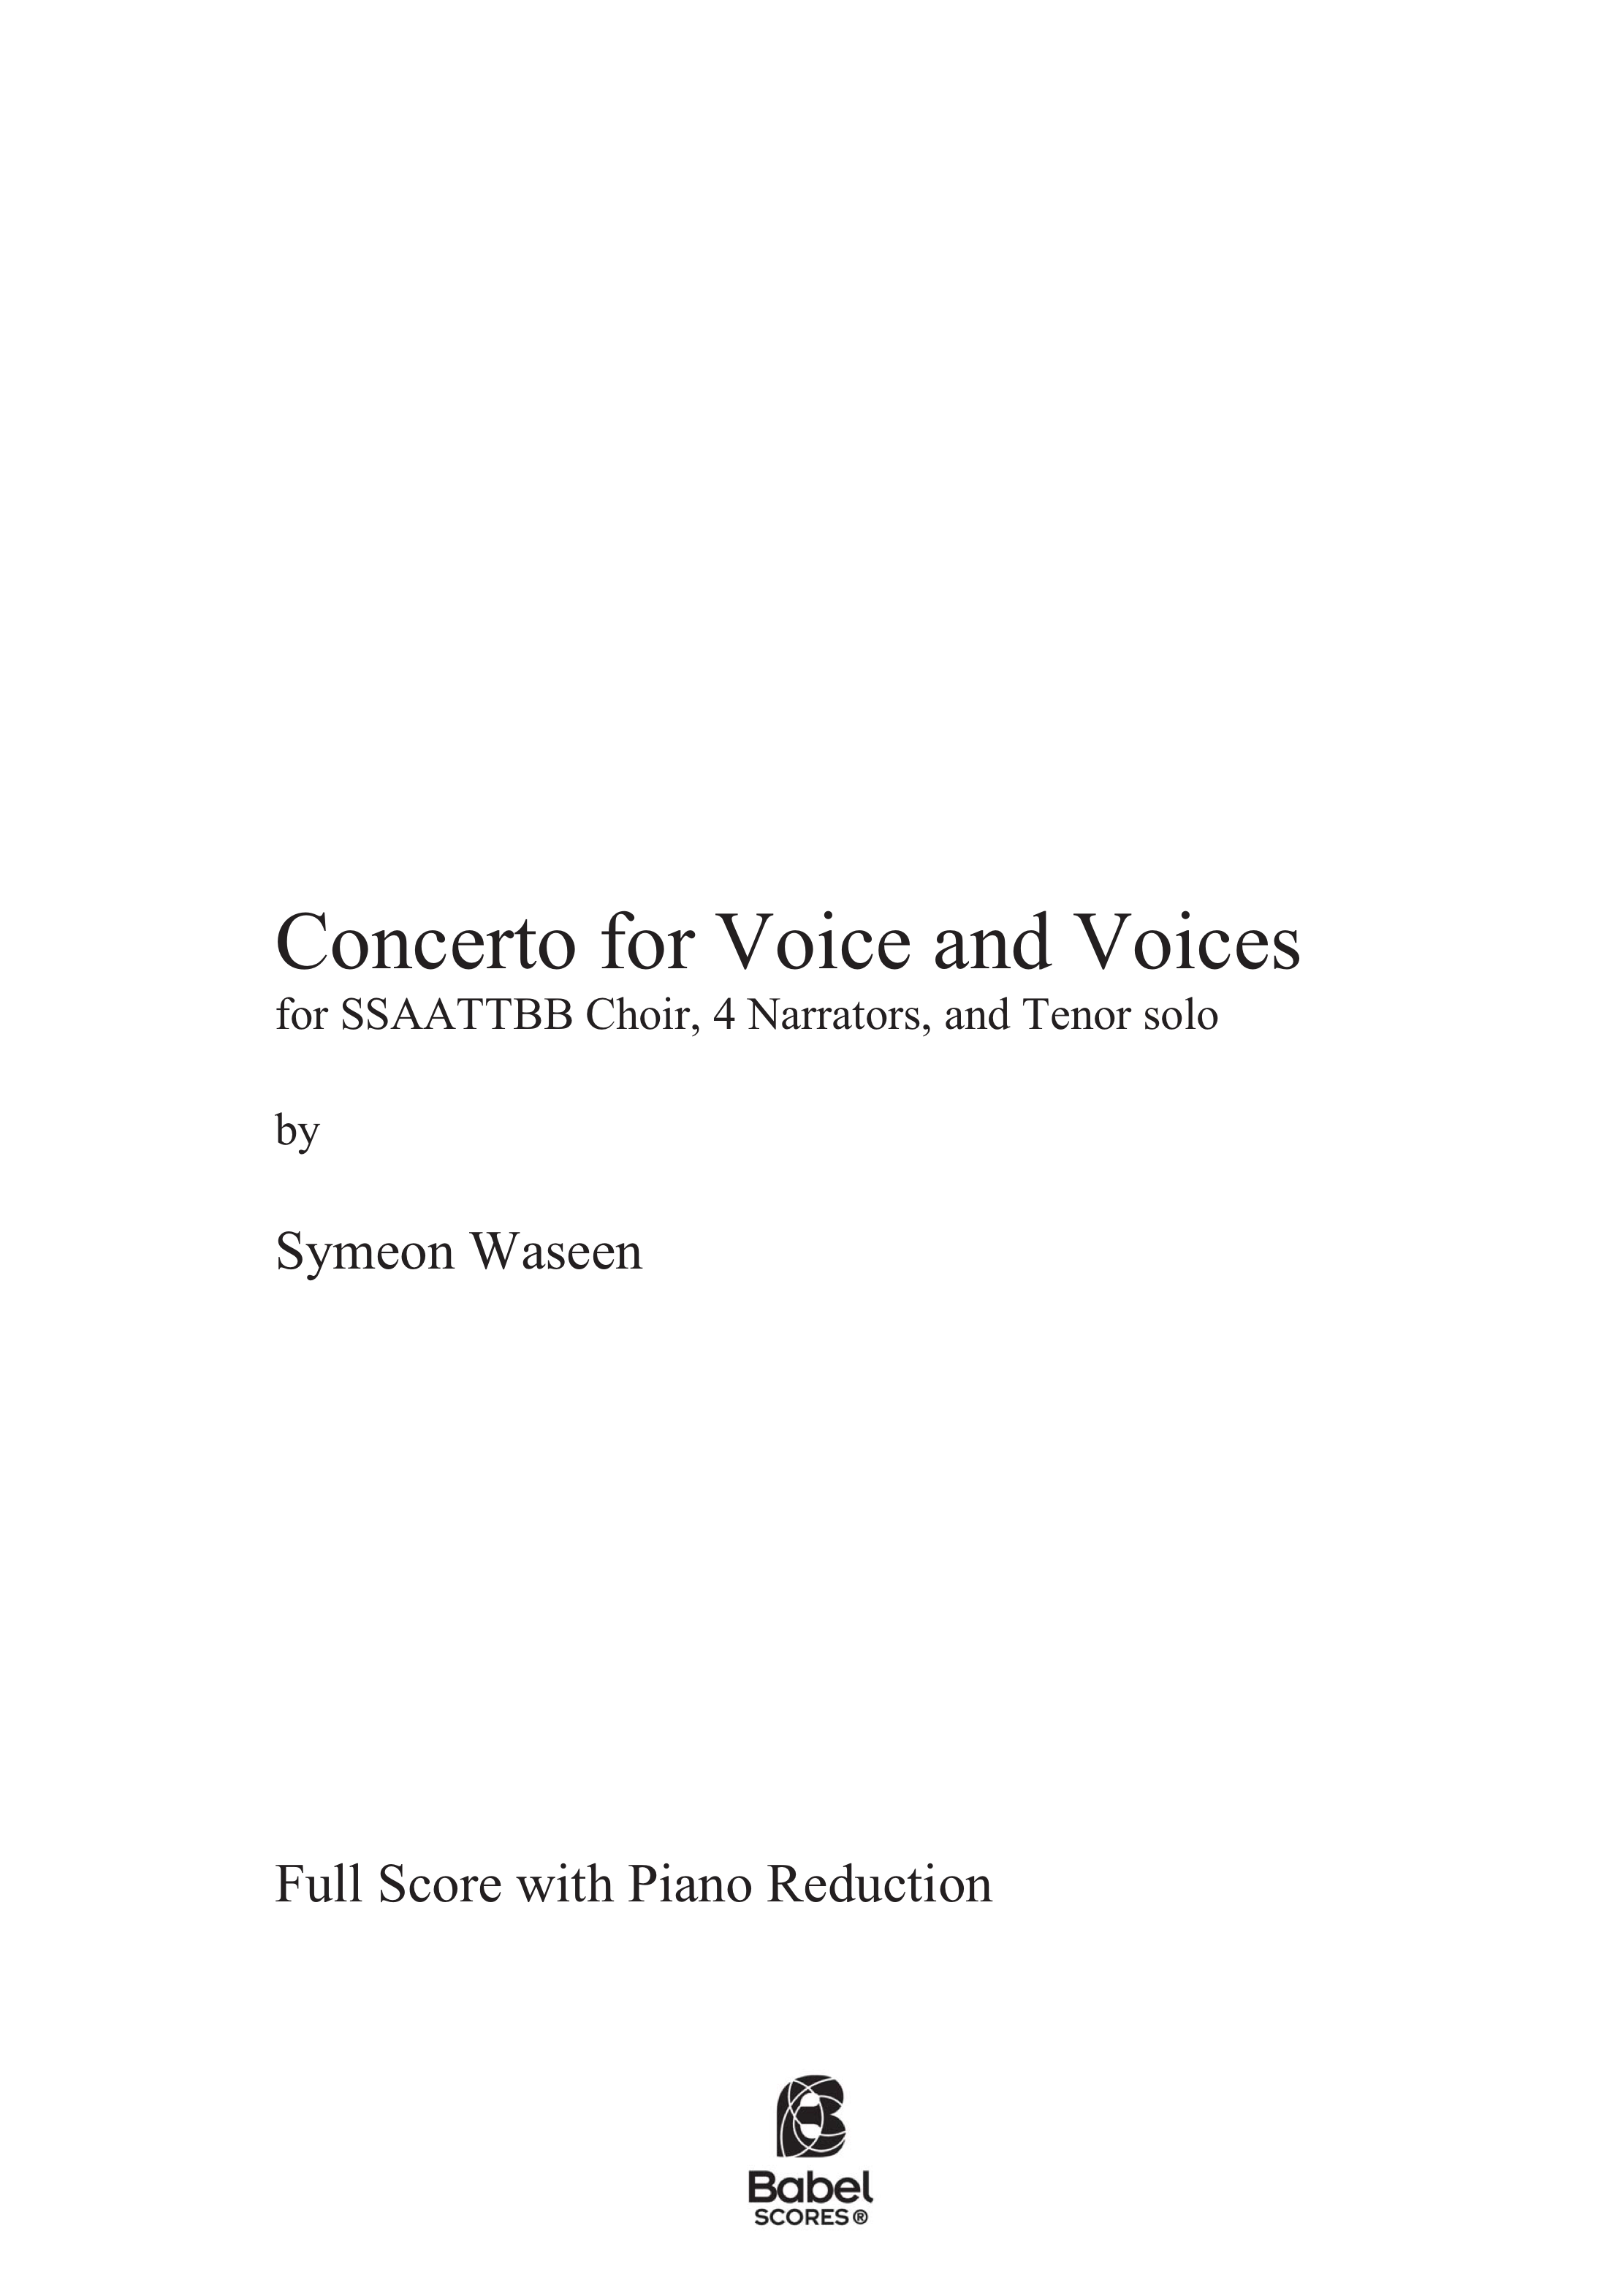 Concerto for Voice and VoicesZ